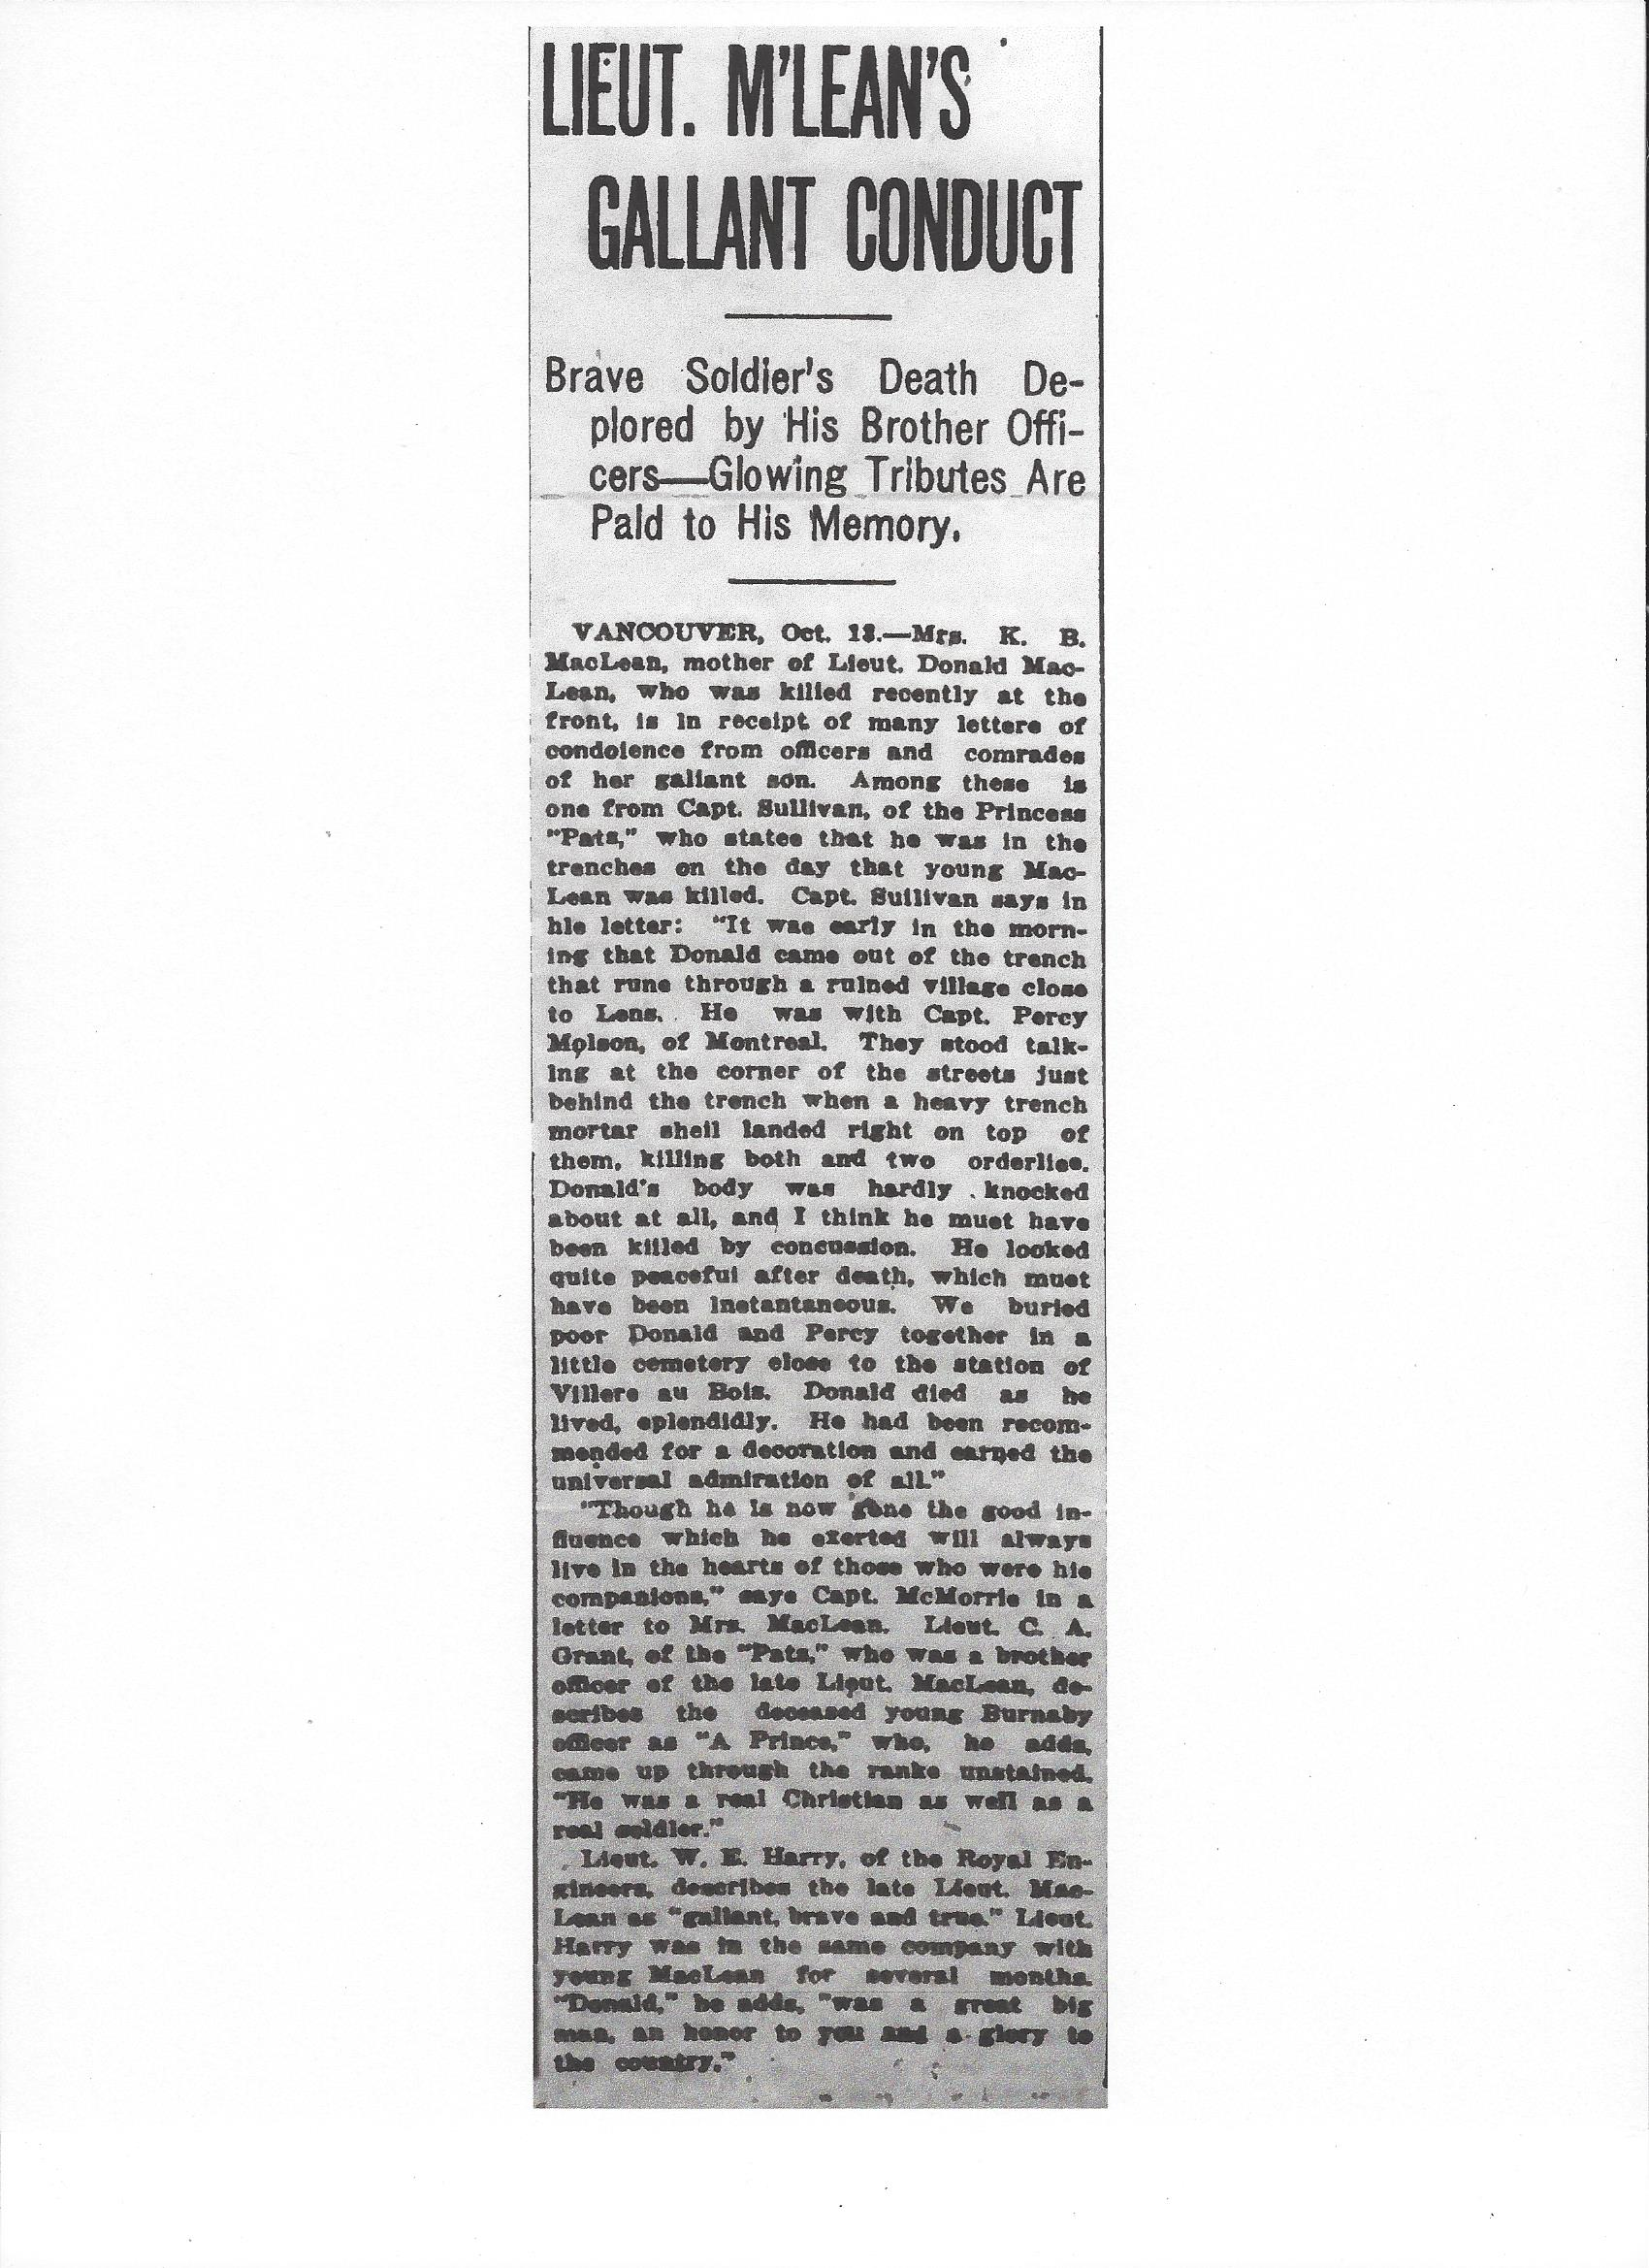 Newspaper Clipping– Newspaper clipping from the Daily Colonist of October 14, 1917. Image taken from web address of http://archive.org/stream/dailycolonist59y265uvic#page/n0/mode/1up